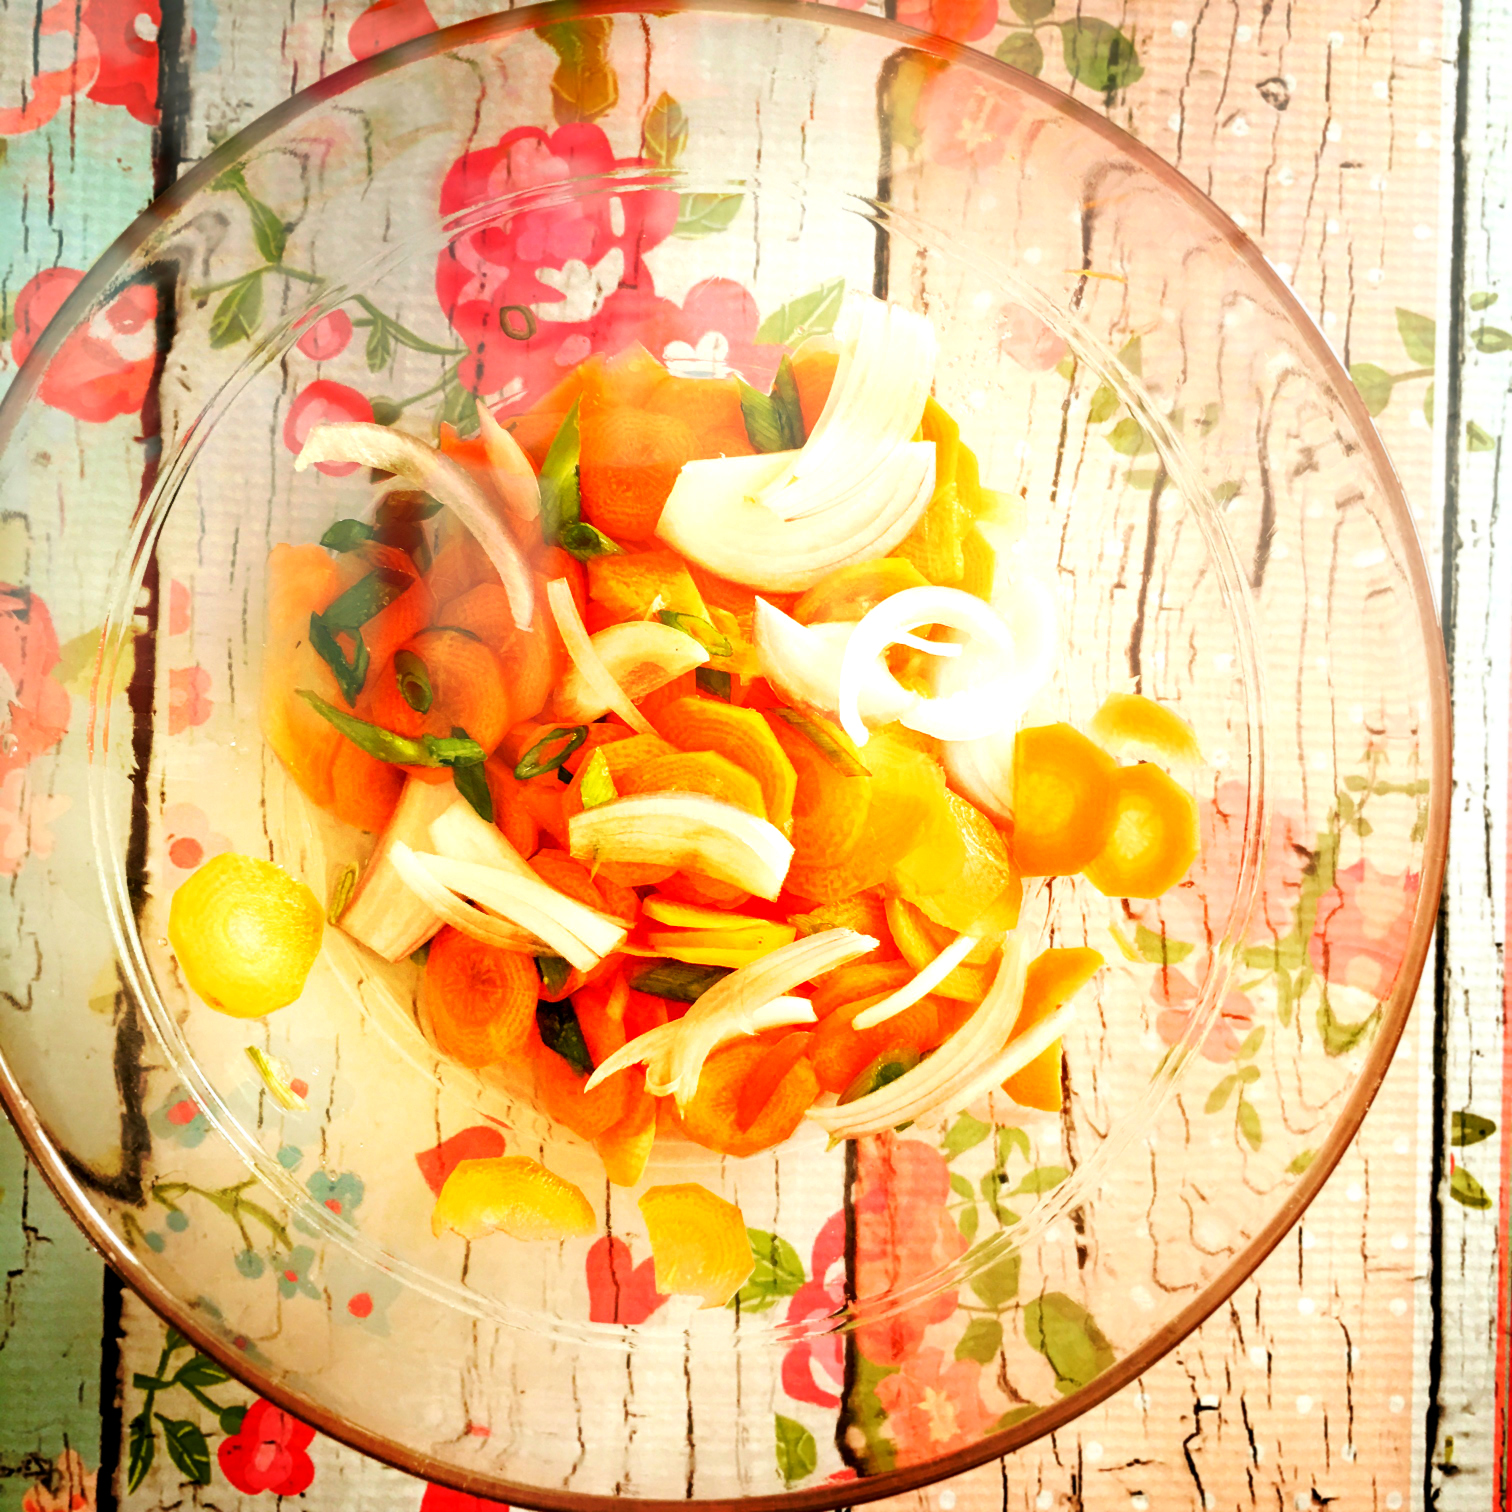 ©Carrots in Bowl with Flowers by Dena T Bray.jpg